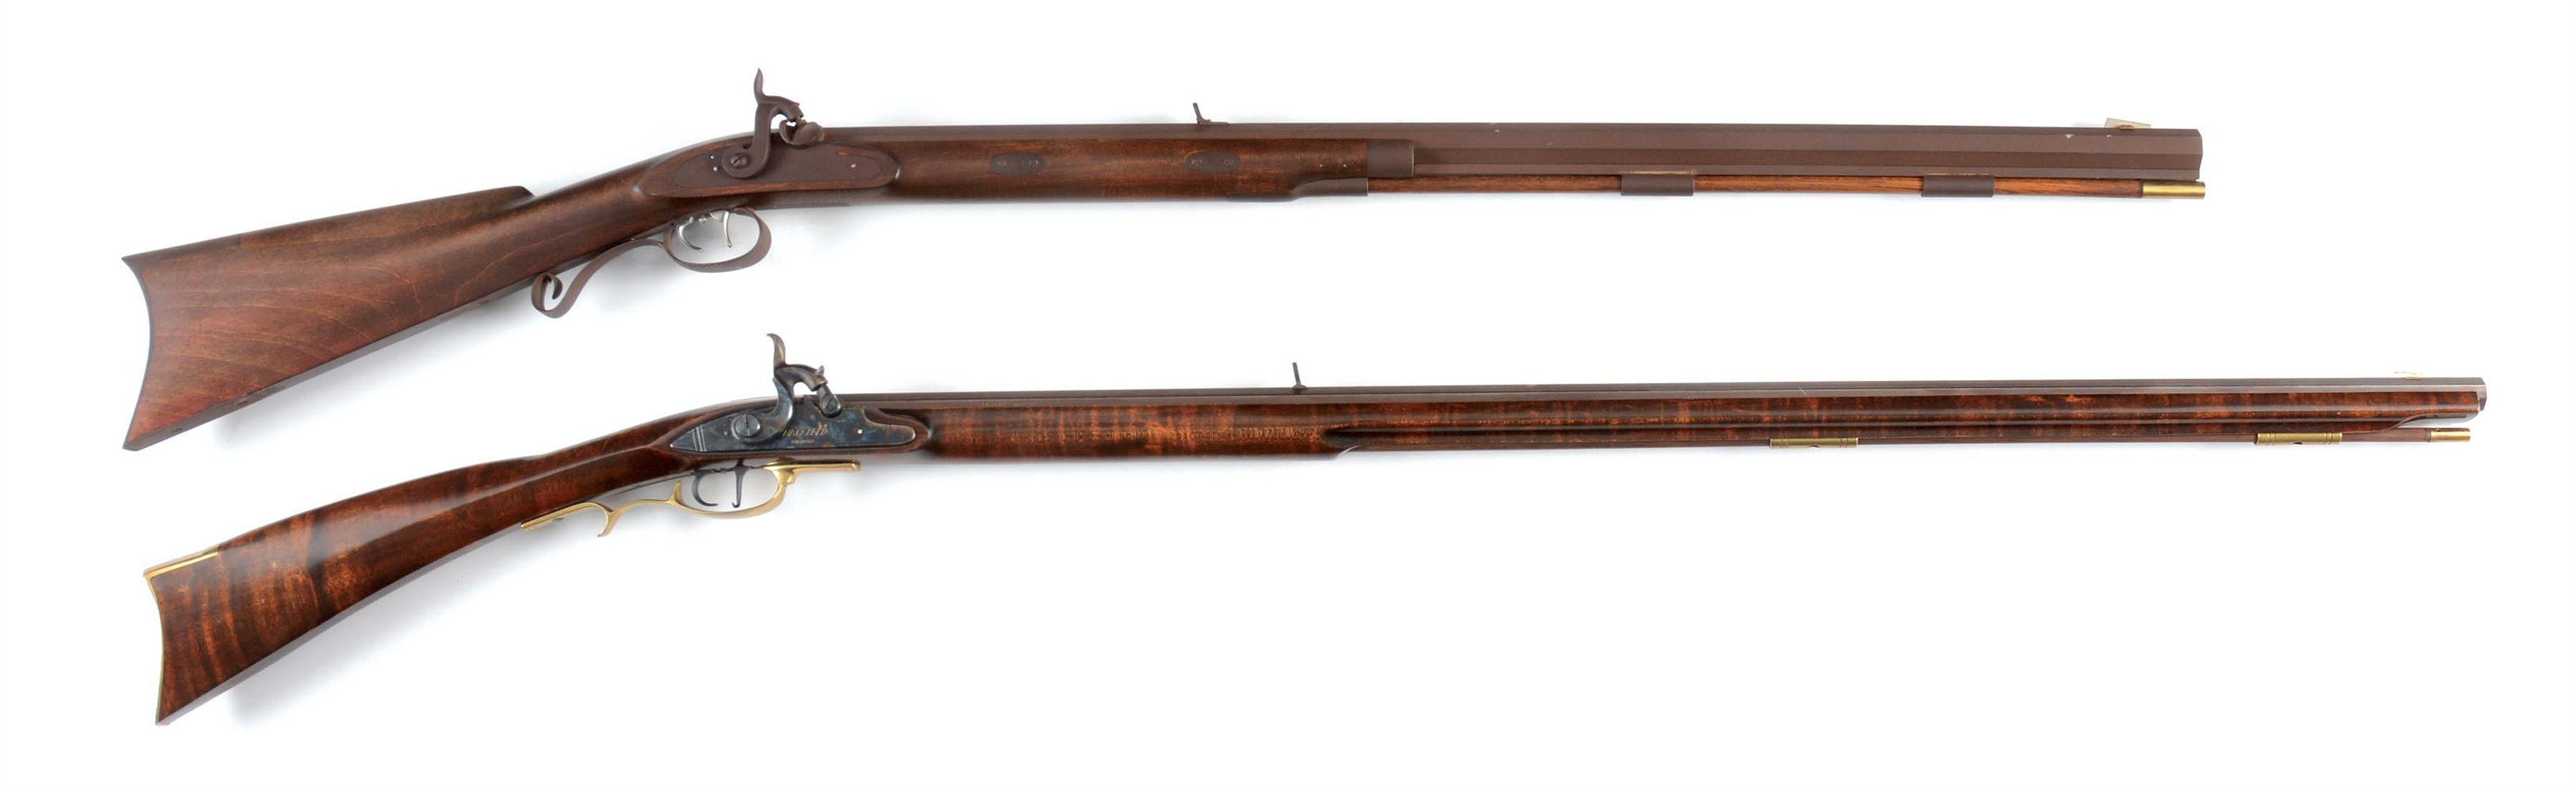 (A) LOT OF TWO: TWO PERCUSSION RIFLES, ONE .54 AND ONE .36 CALIBER.